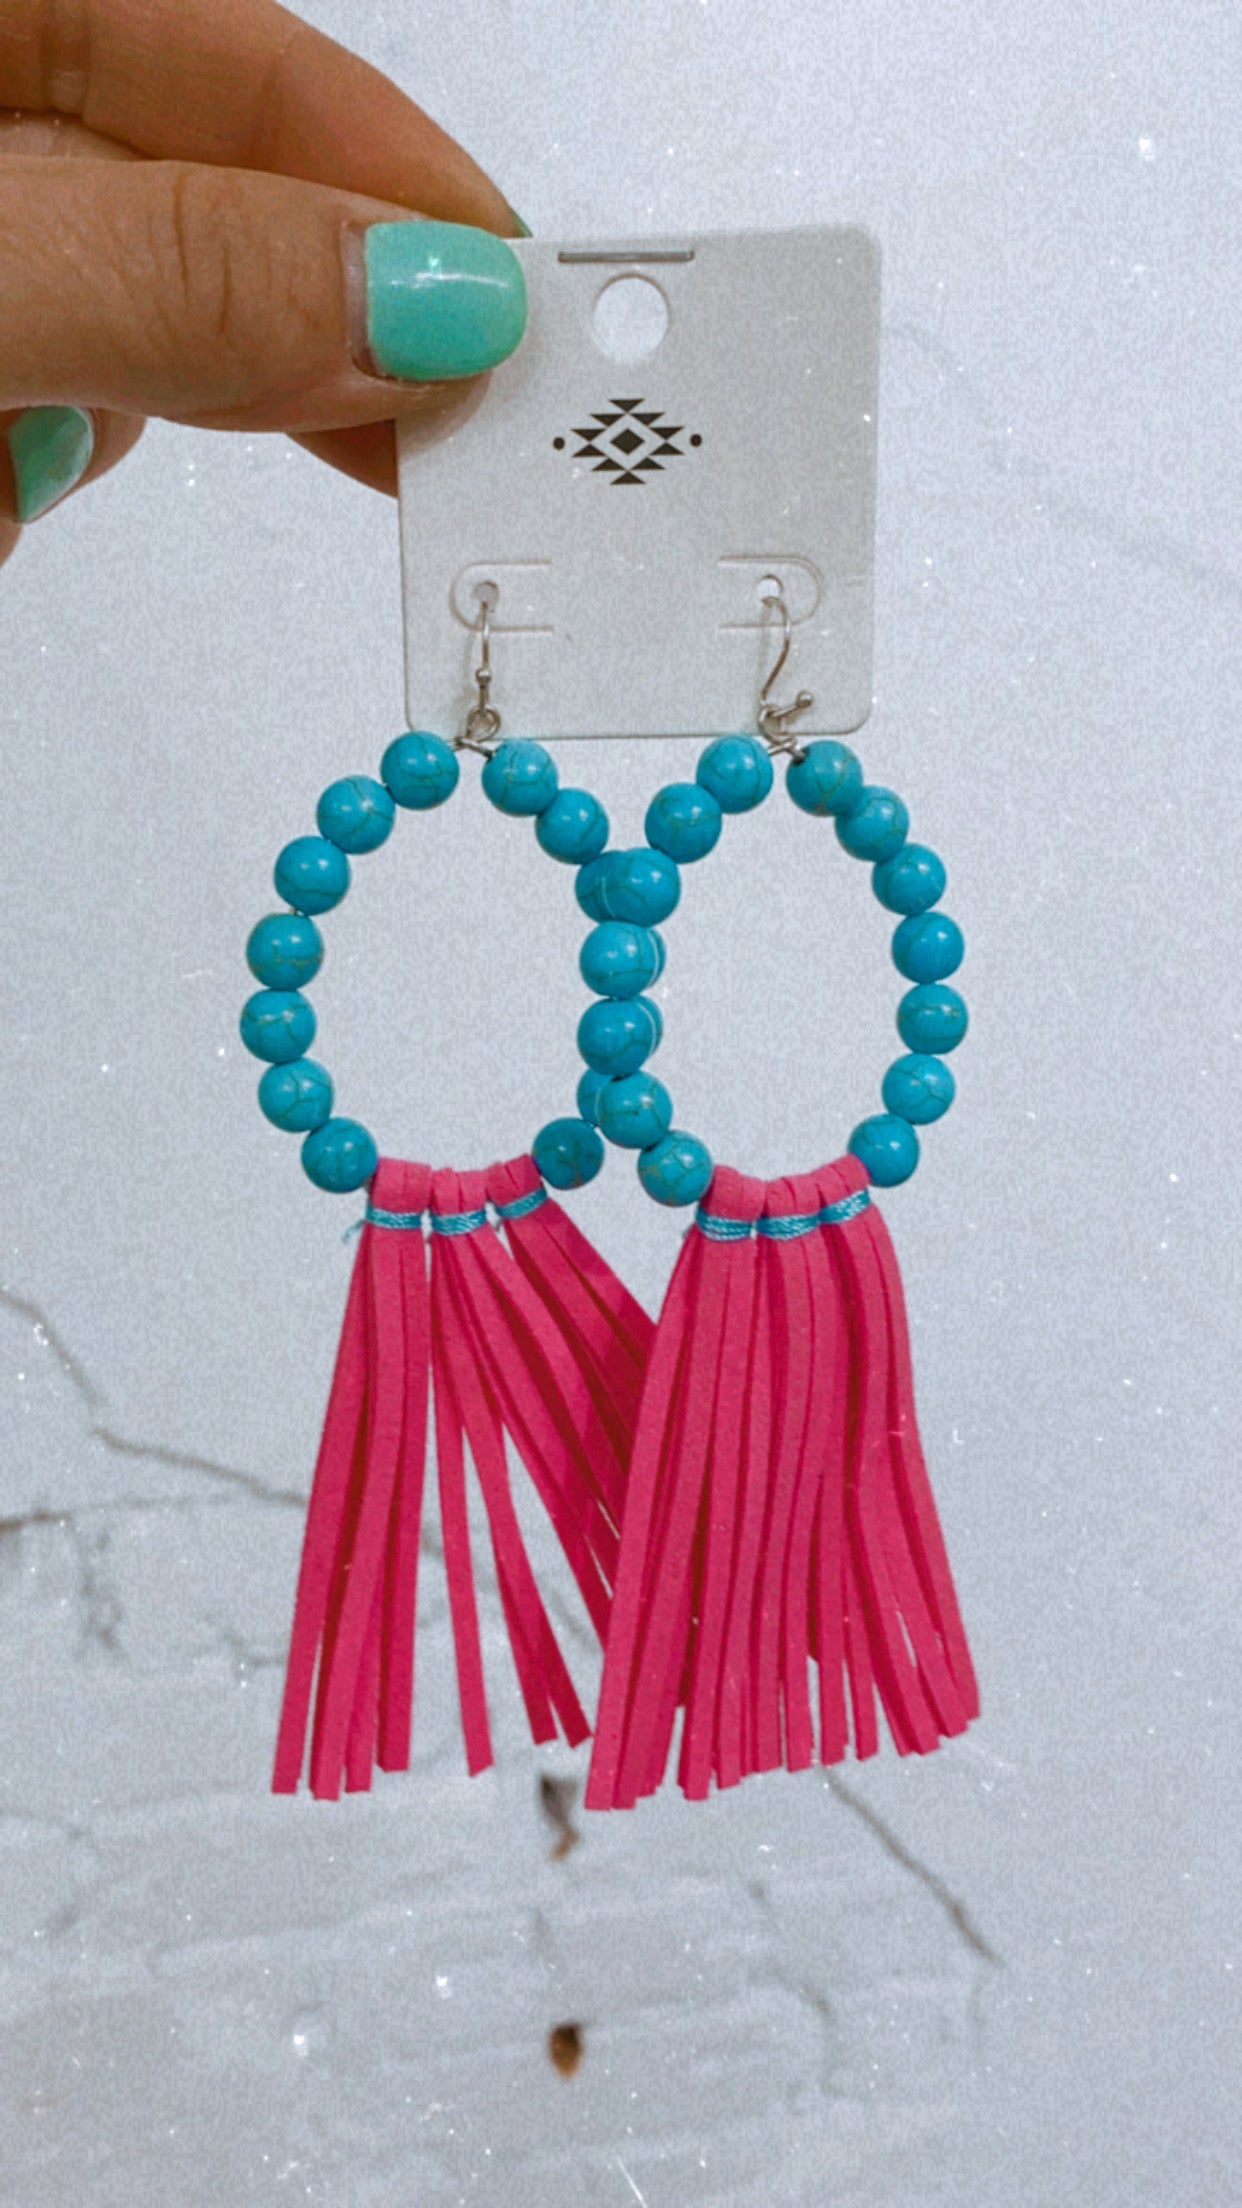 Turquoise Beads & Hot Pink Tassels Earrings